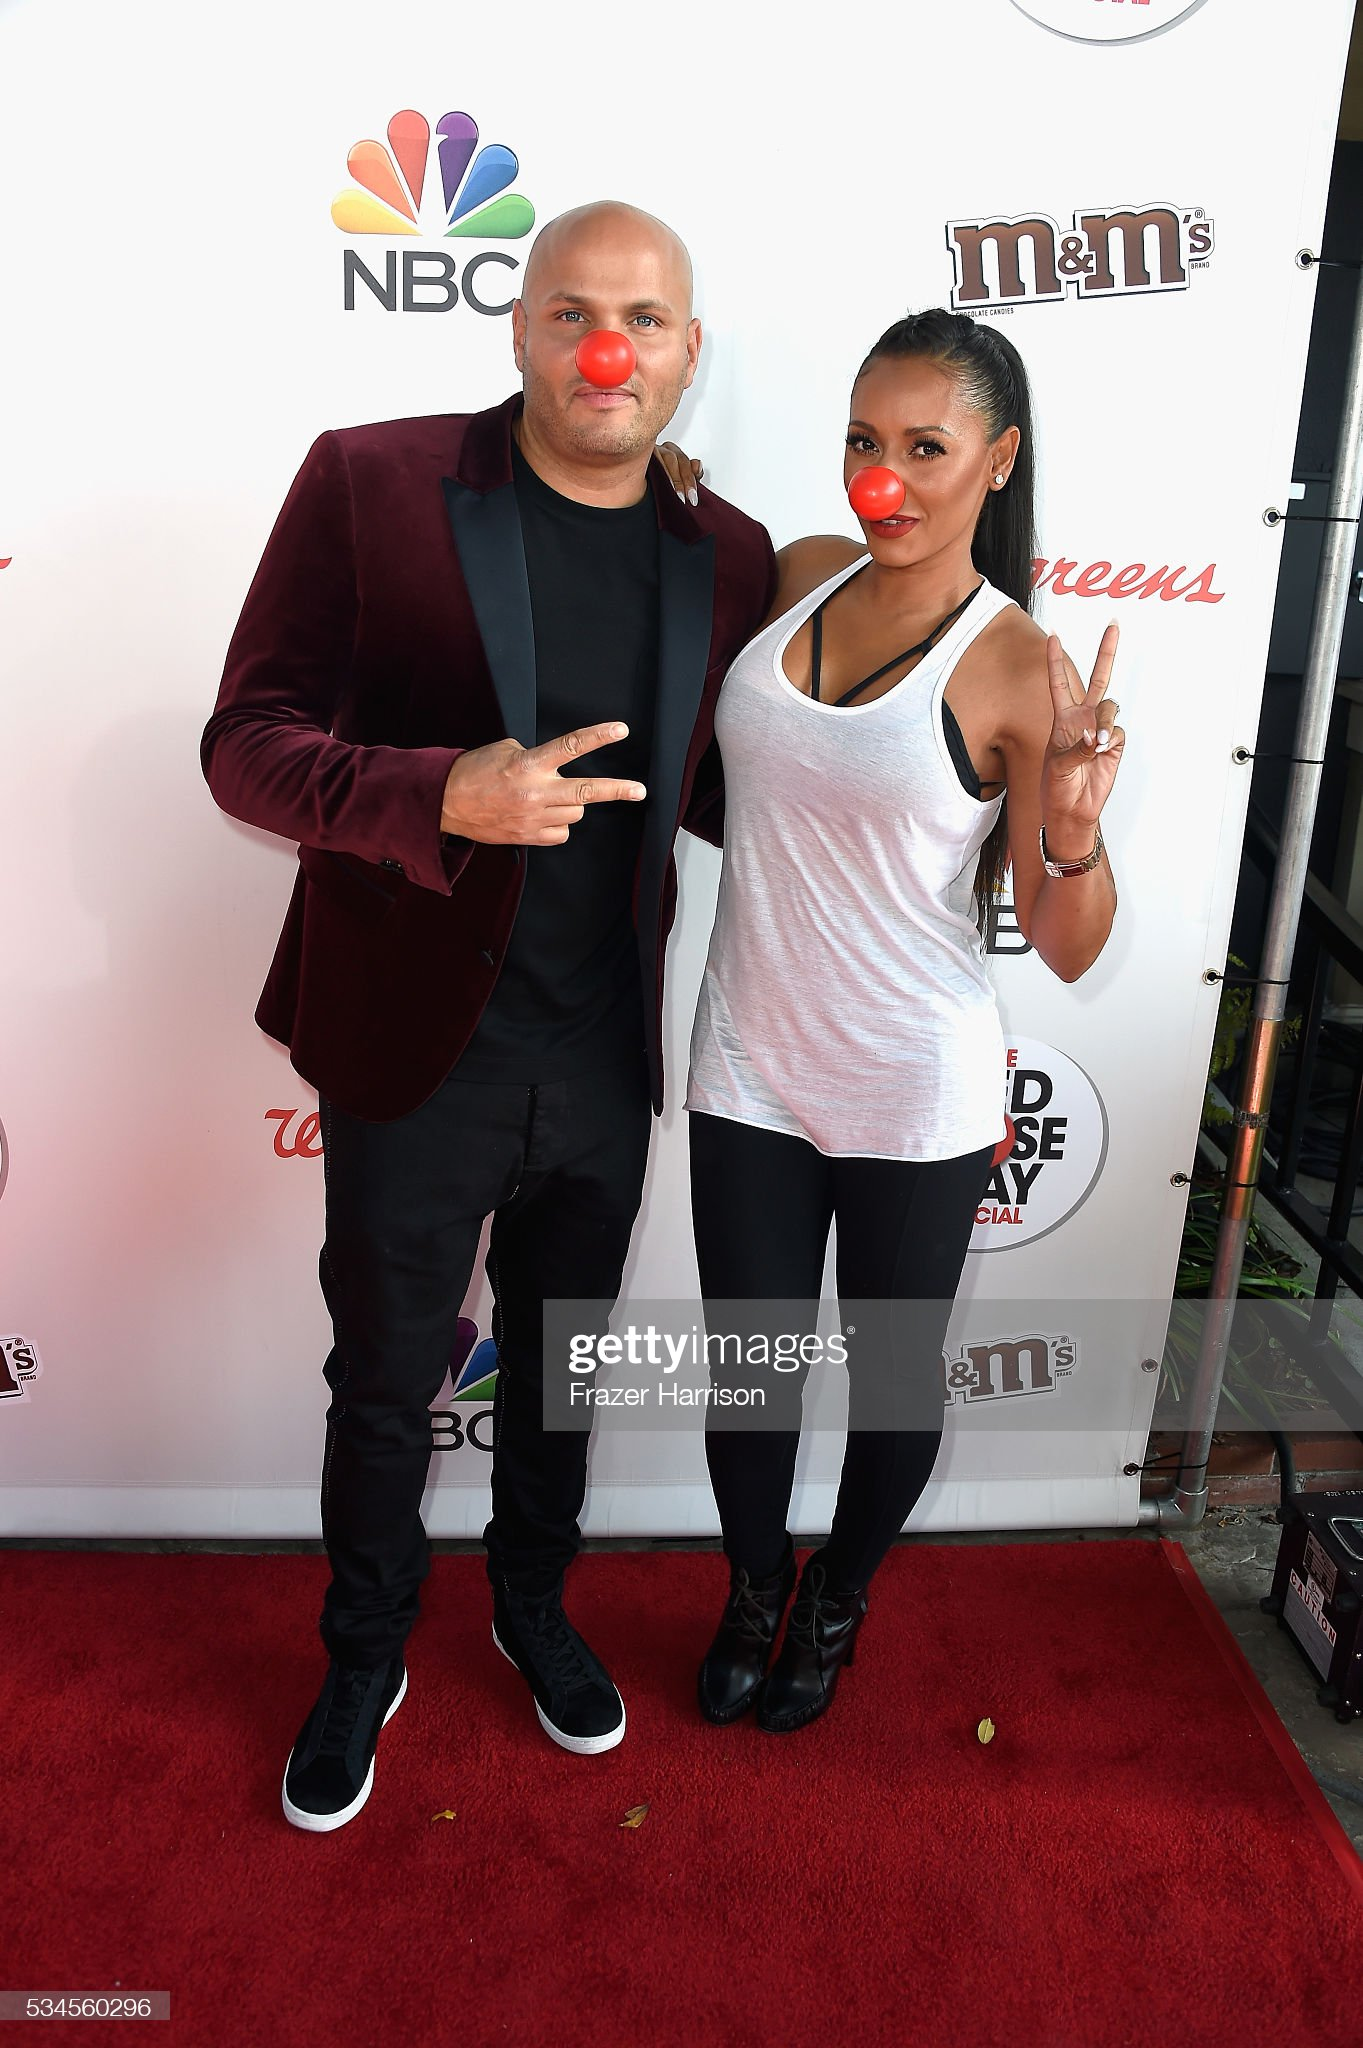 ¿Cuánto mide Stephen Belafonte? - Altura - Real height Stephen-belafonte-and-mel-b-attend-the-red-nose-day-special-on-nbc-at-picture-id534560296?s=2048x2048